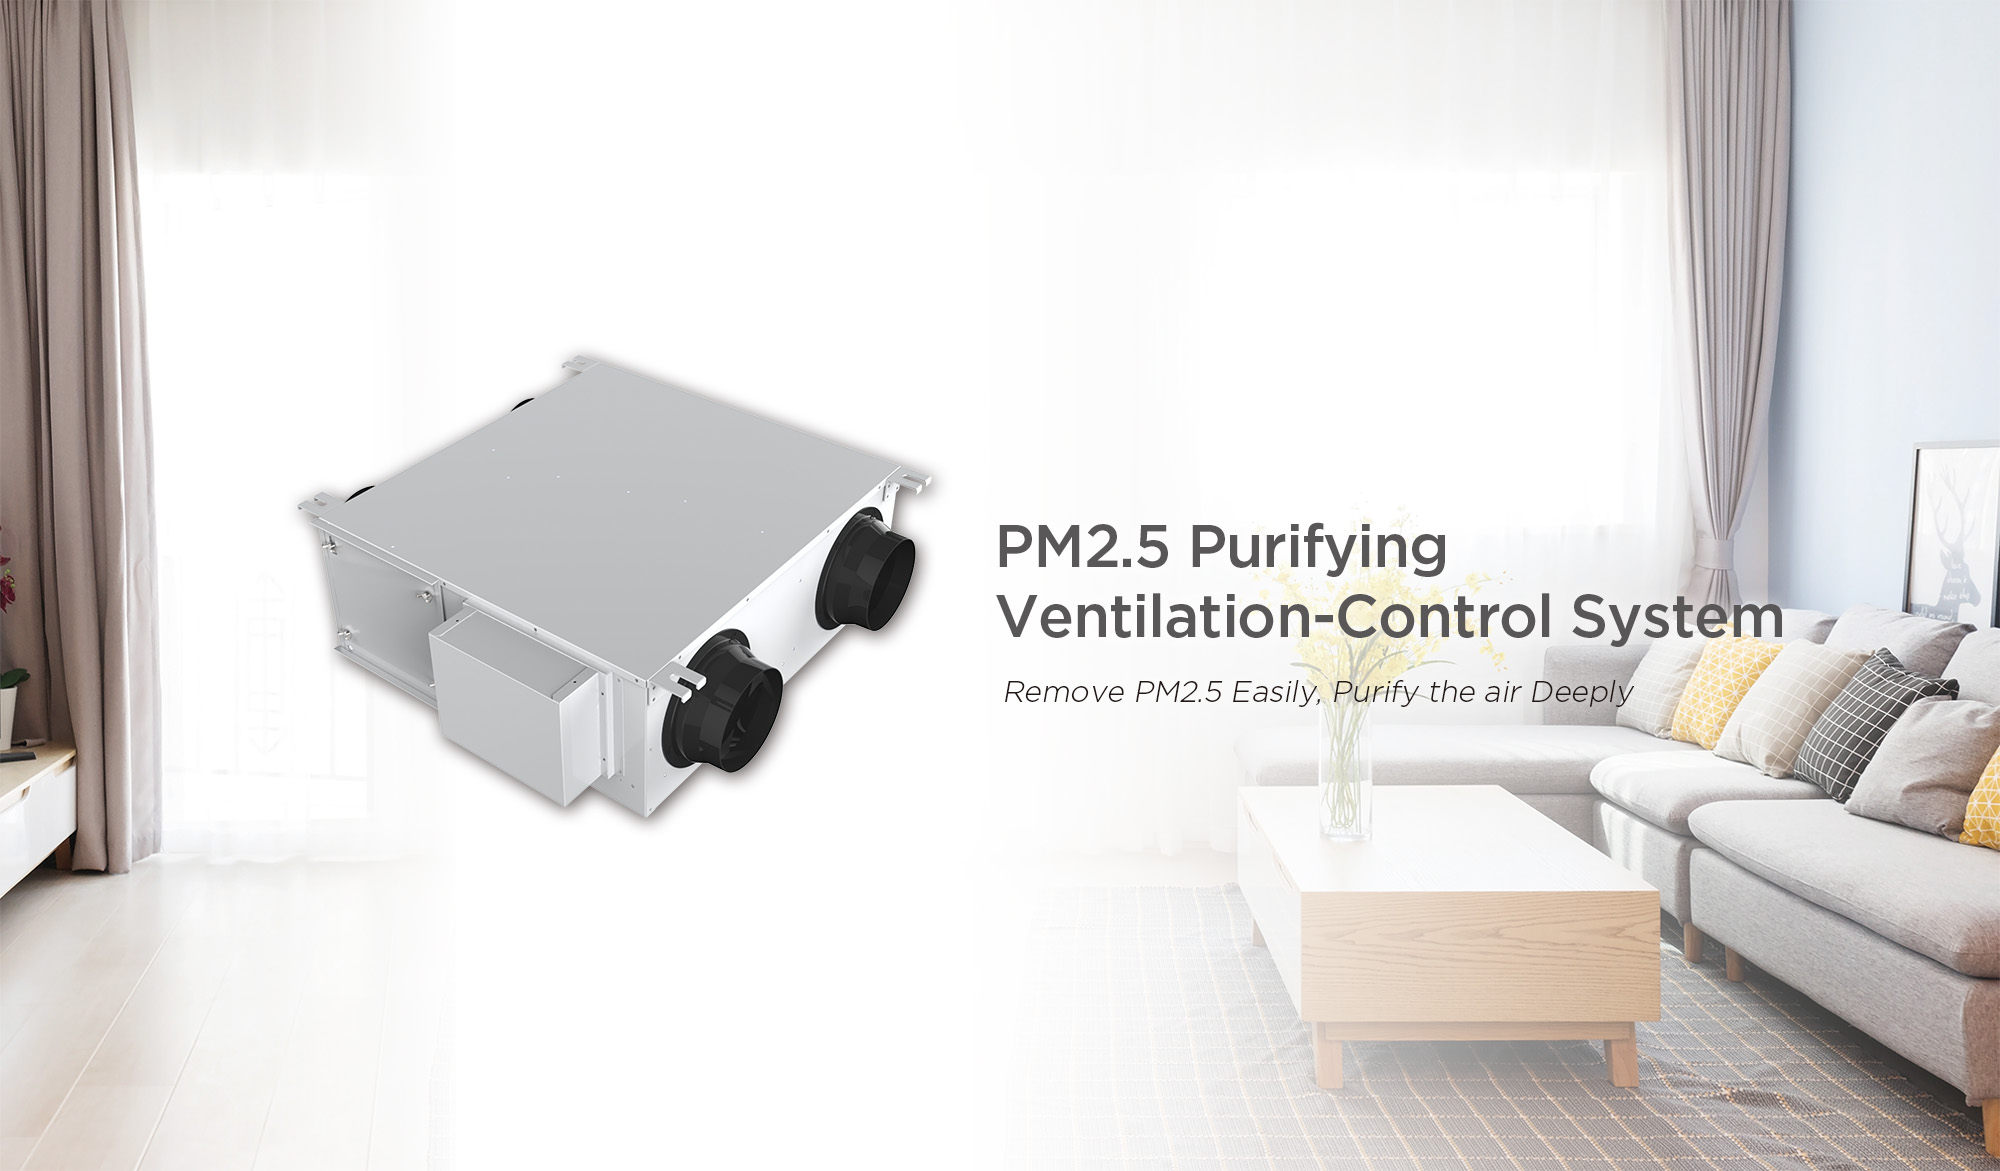 PM2.5 Purifying Ventilation-Control System